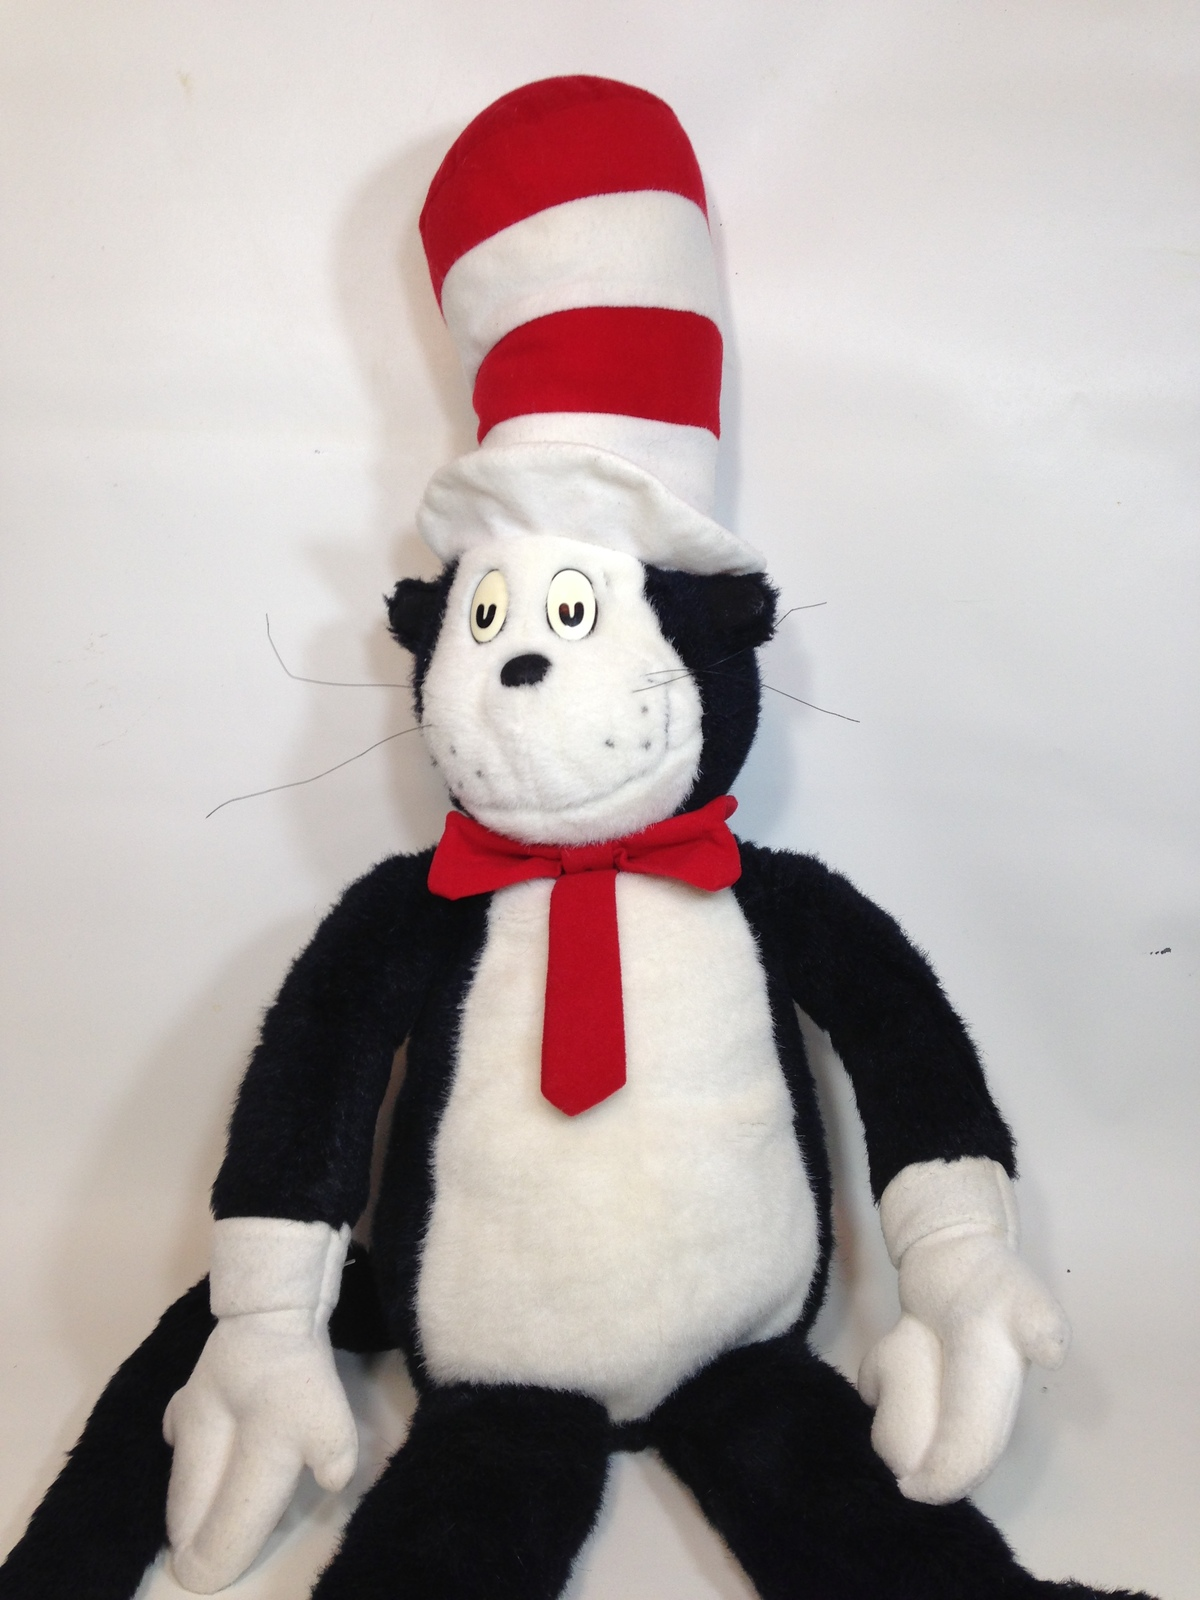 Dr Seuss Cat In The Hat Plush Doll 2 Listings